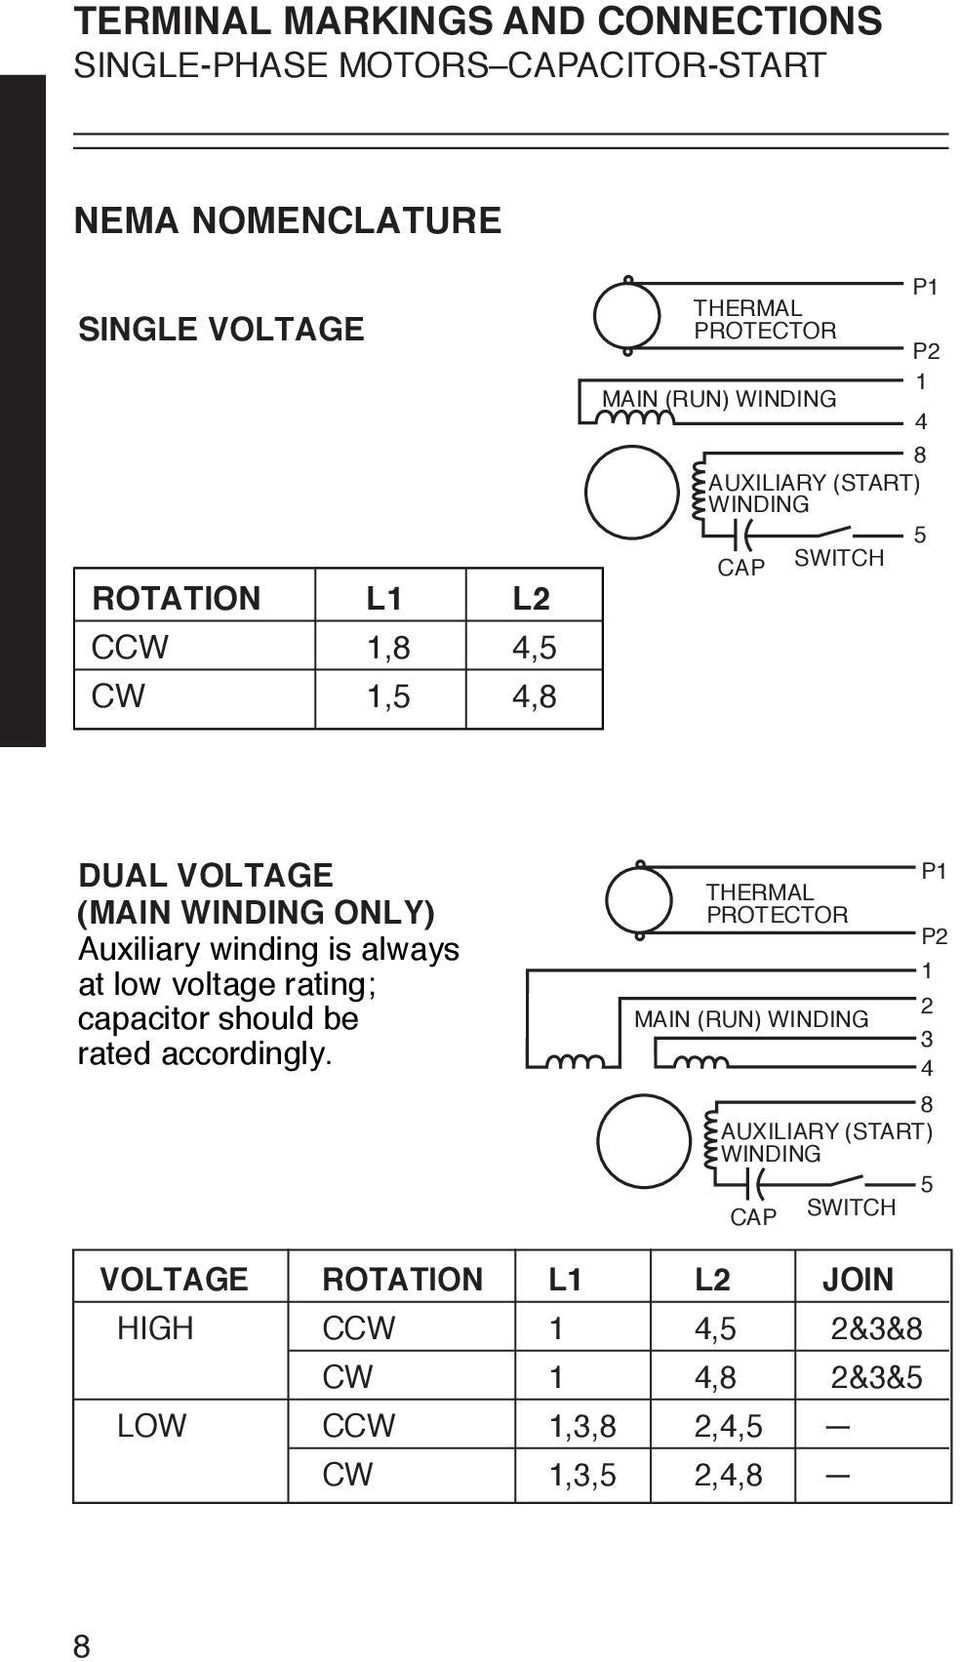 hight resolution of auxiliary winding is always at low voltage rating capacitor should be rated accordingly